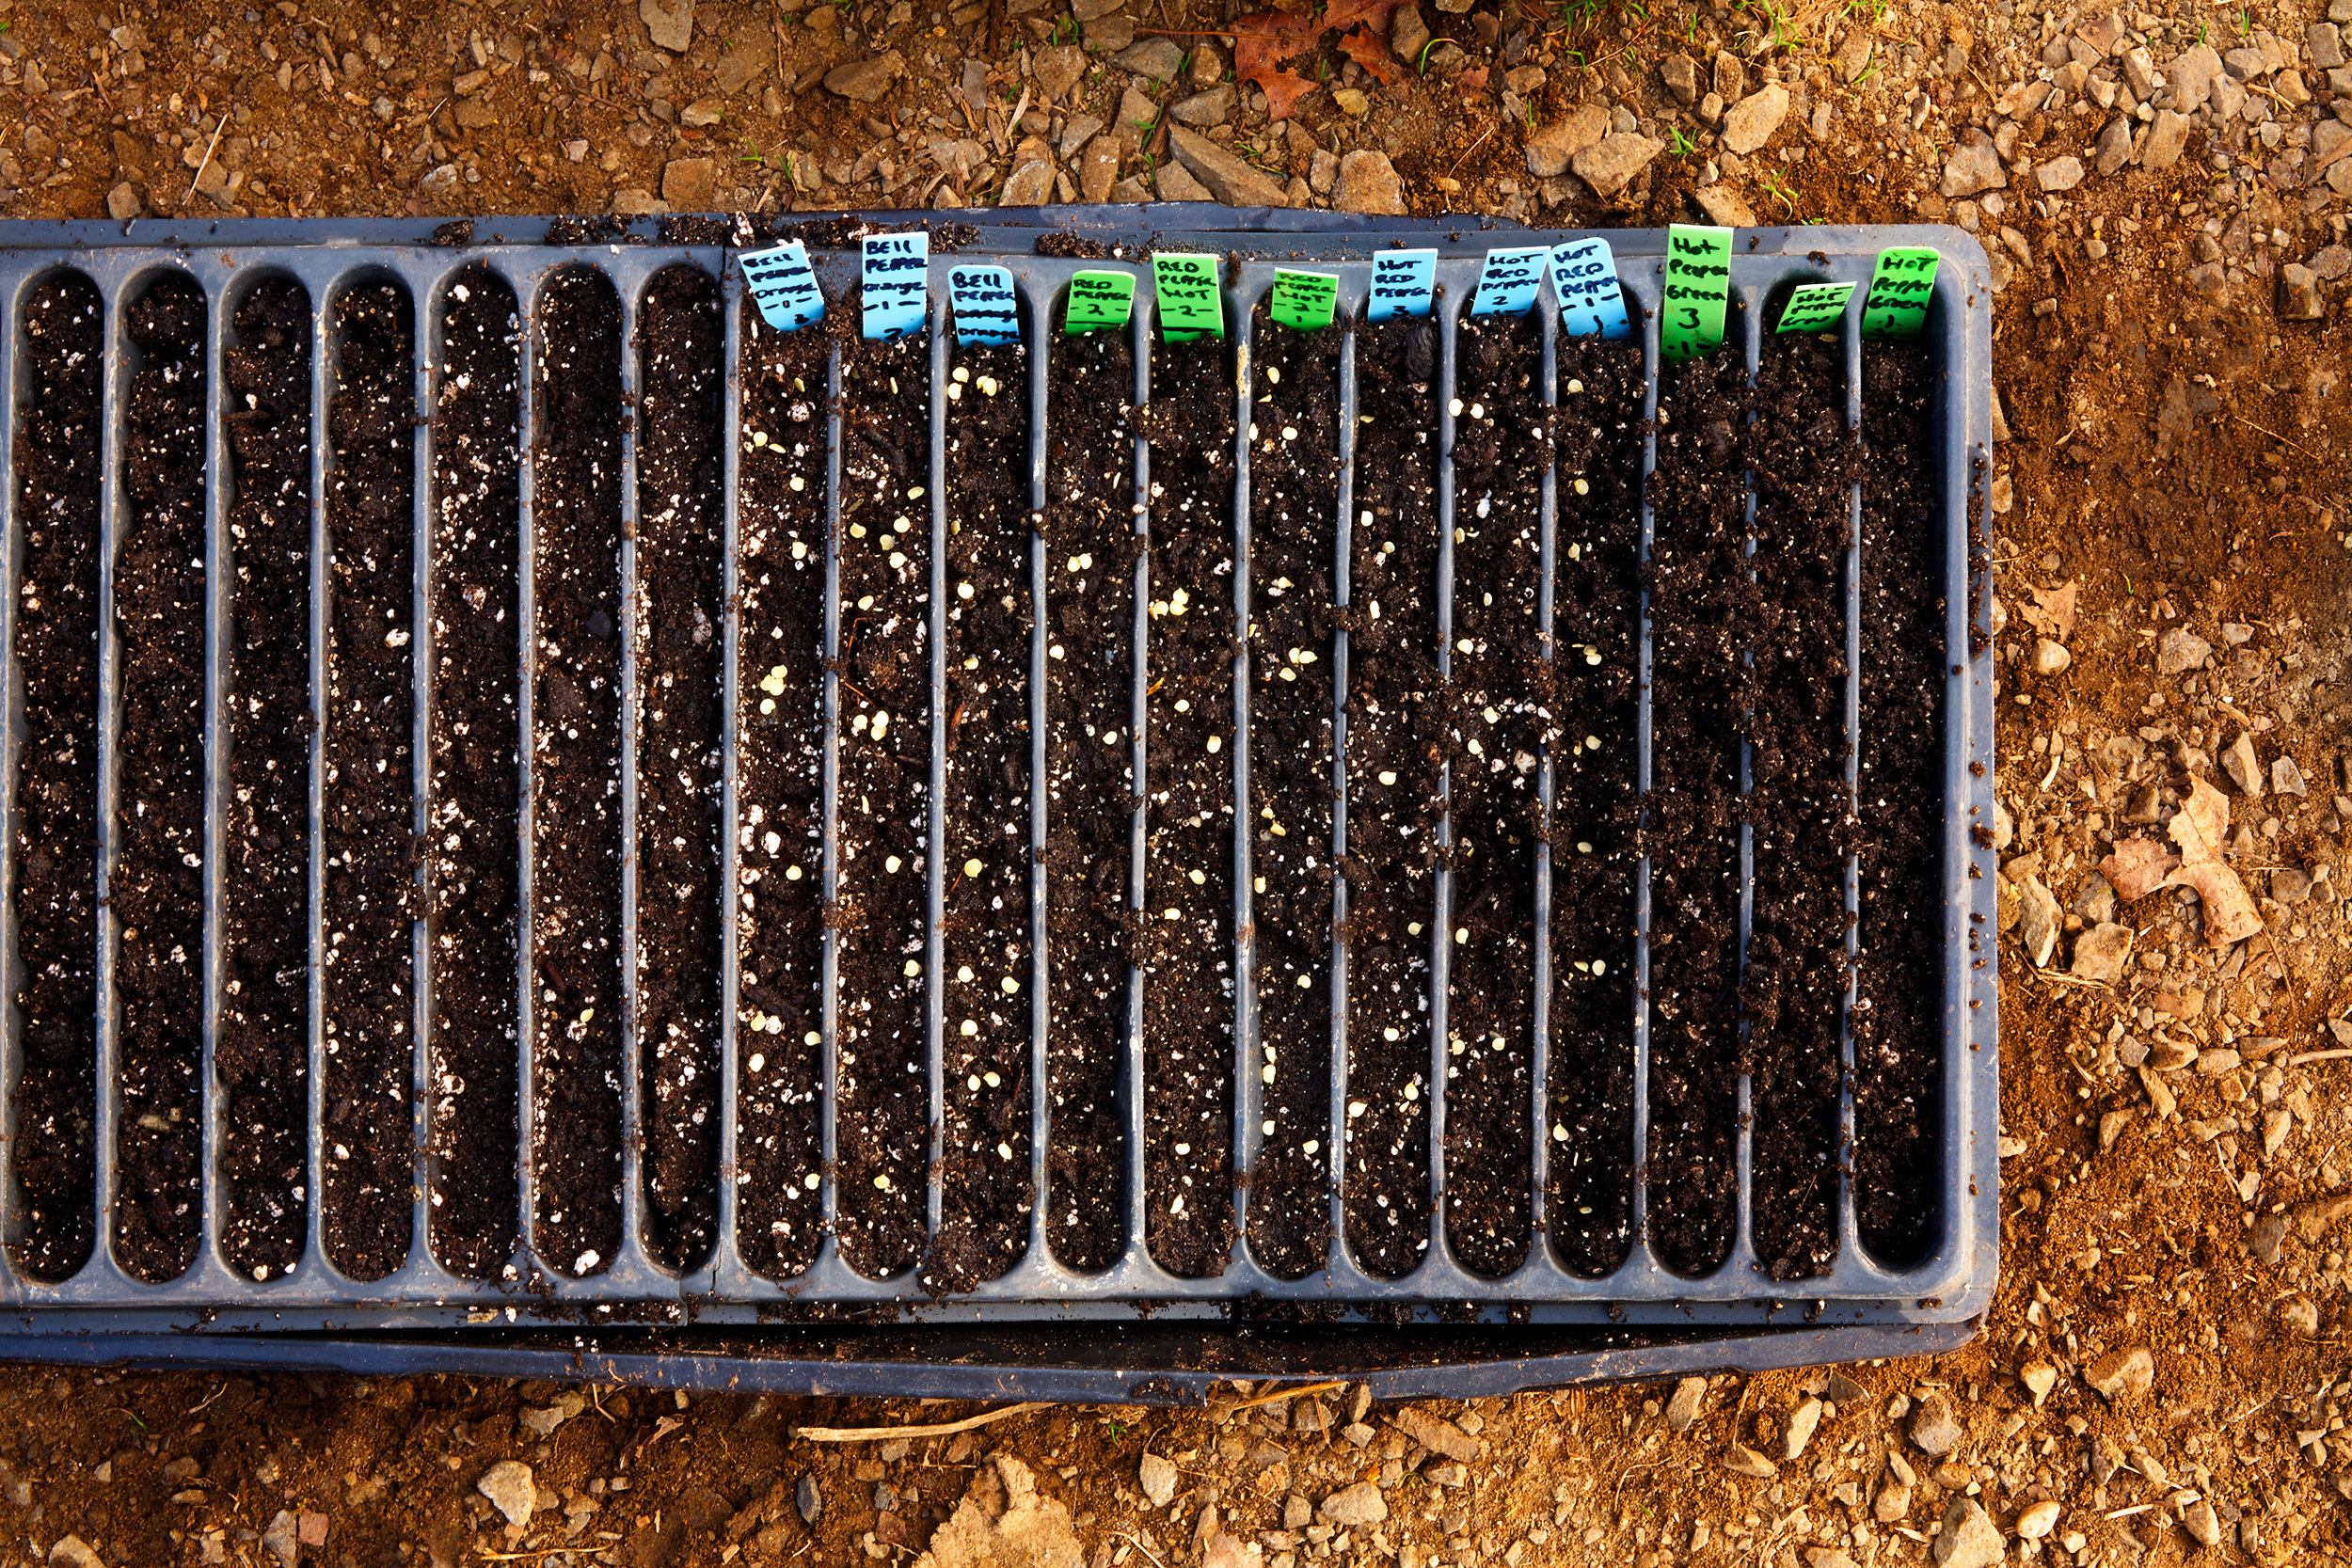 SEED-TRAY-ORGANIC-GARDEN-032413_SIGNS-OF-SPRING-©-JONATHAN-R.-BECKERMAN-PHOTOGRAPHY.jpg